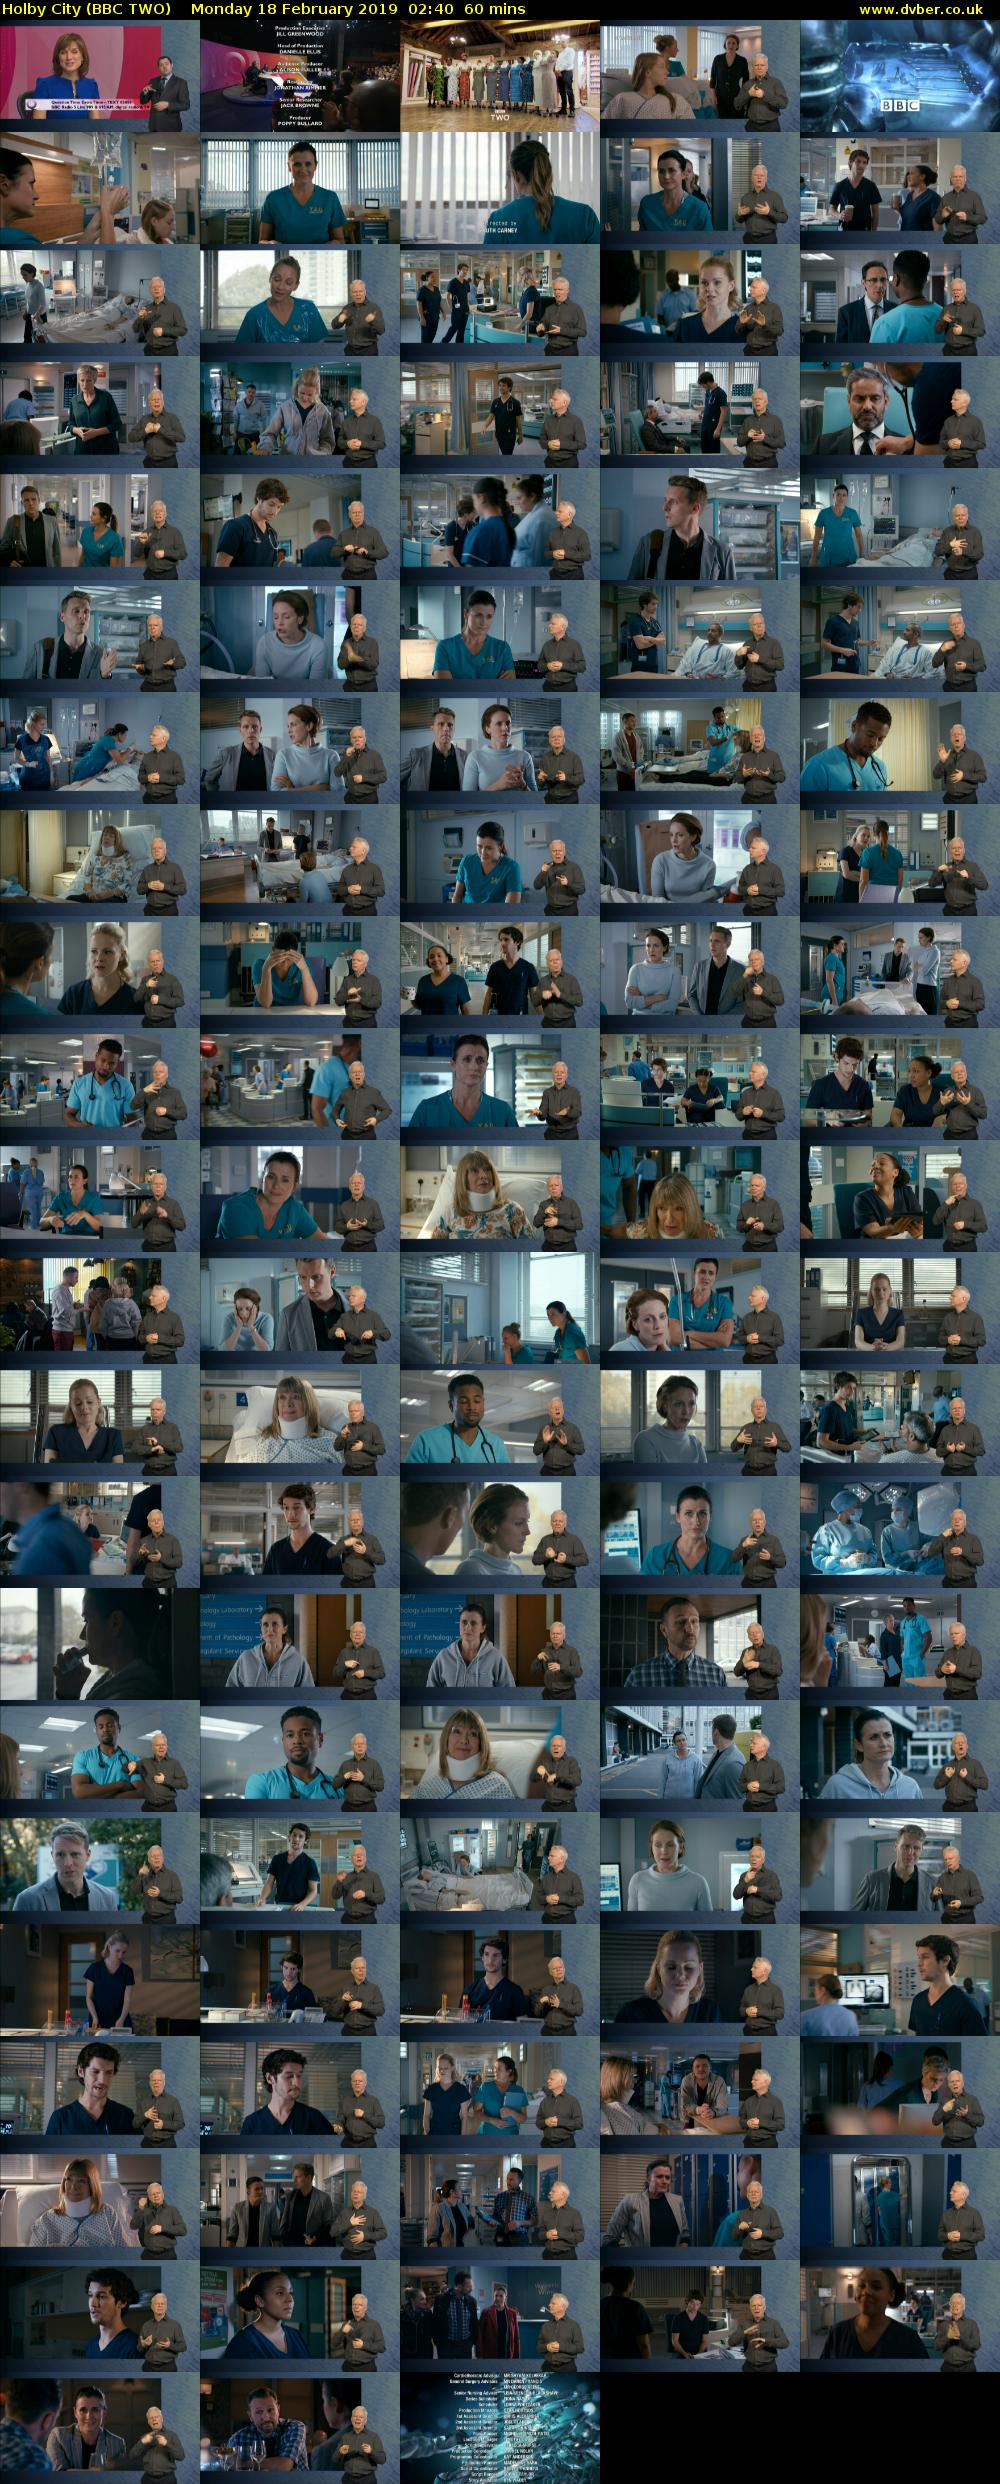 Holby City (BBC TWO) Monday 18 February 2019 02:40 - 03:40